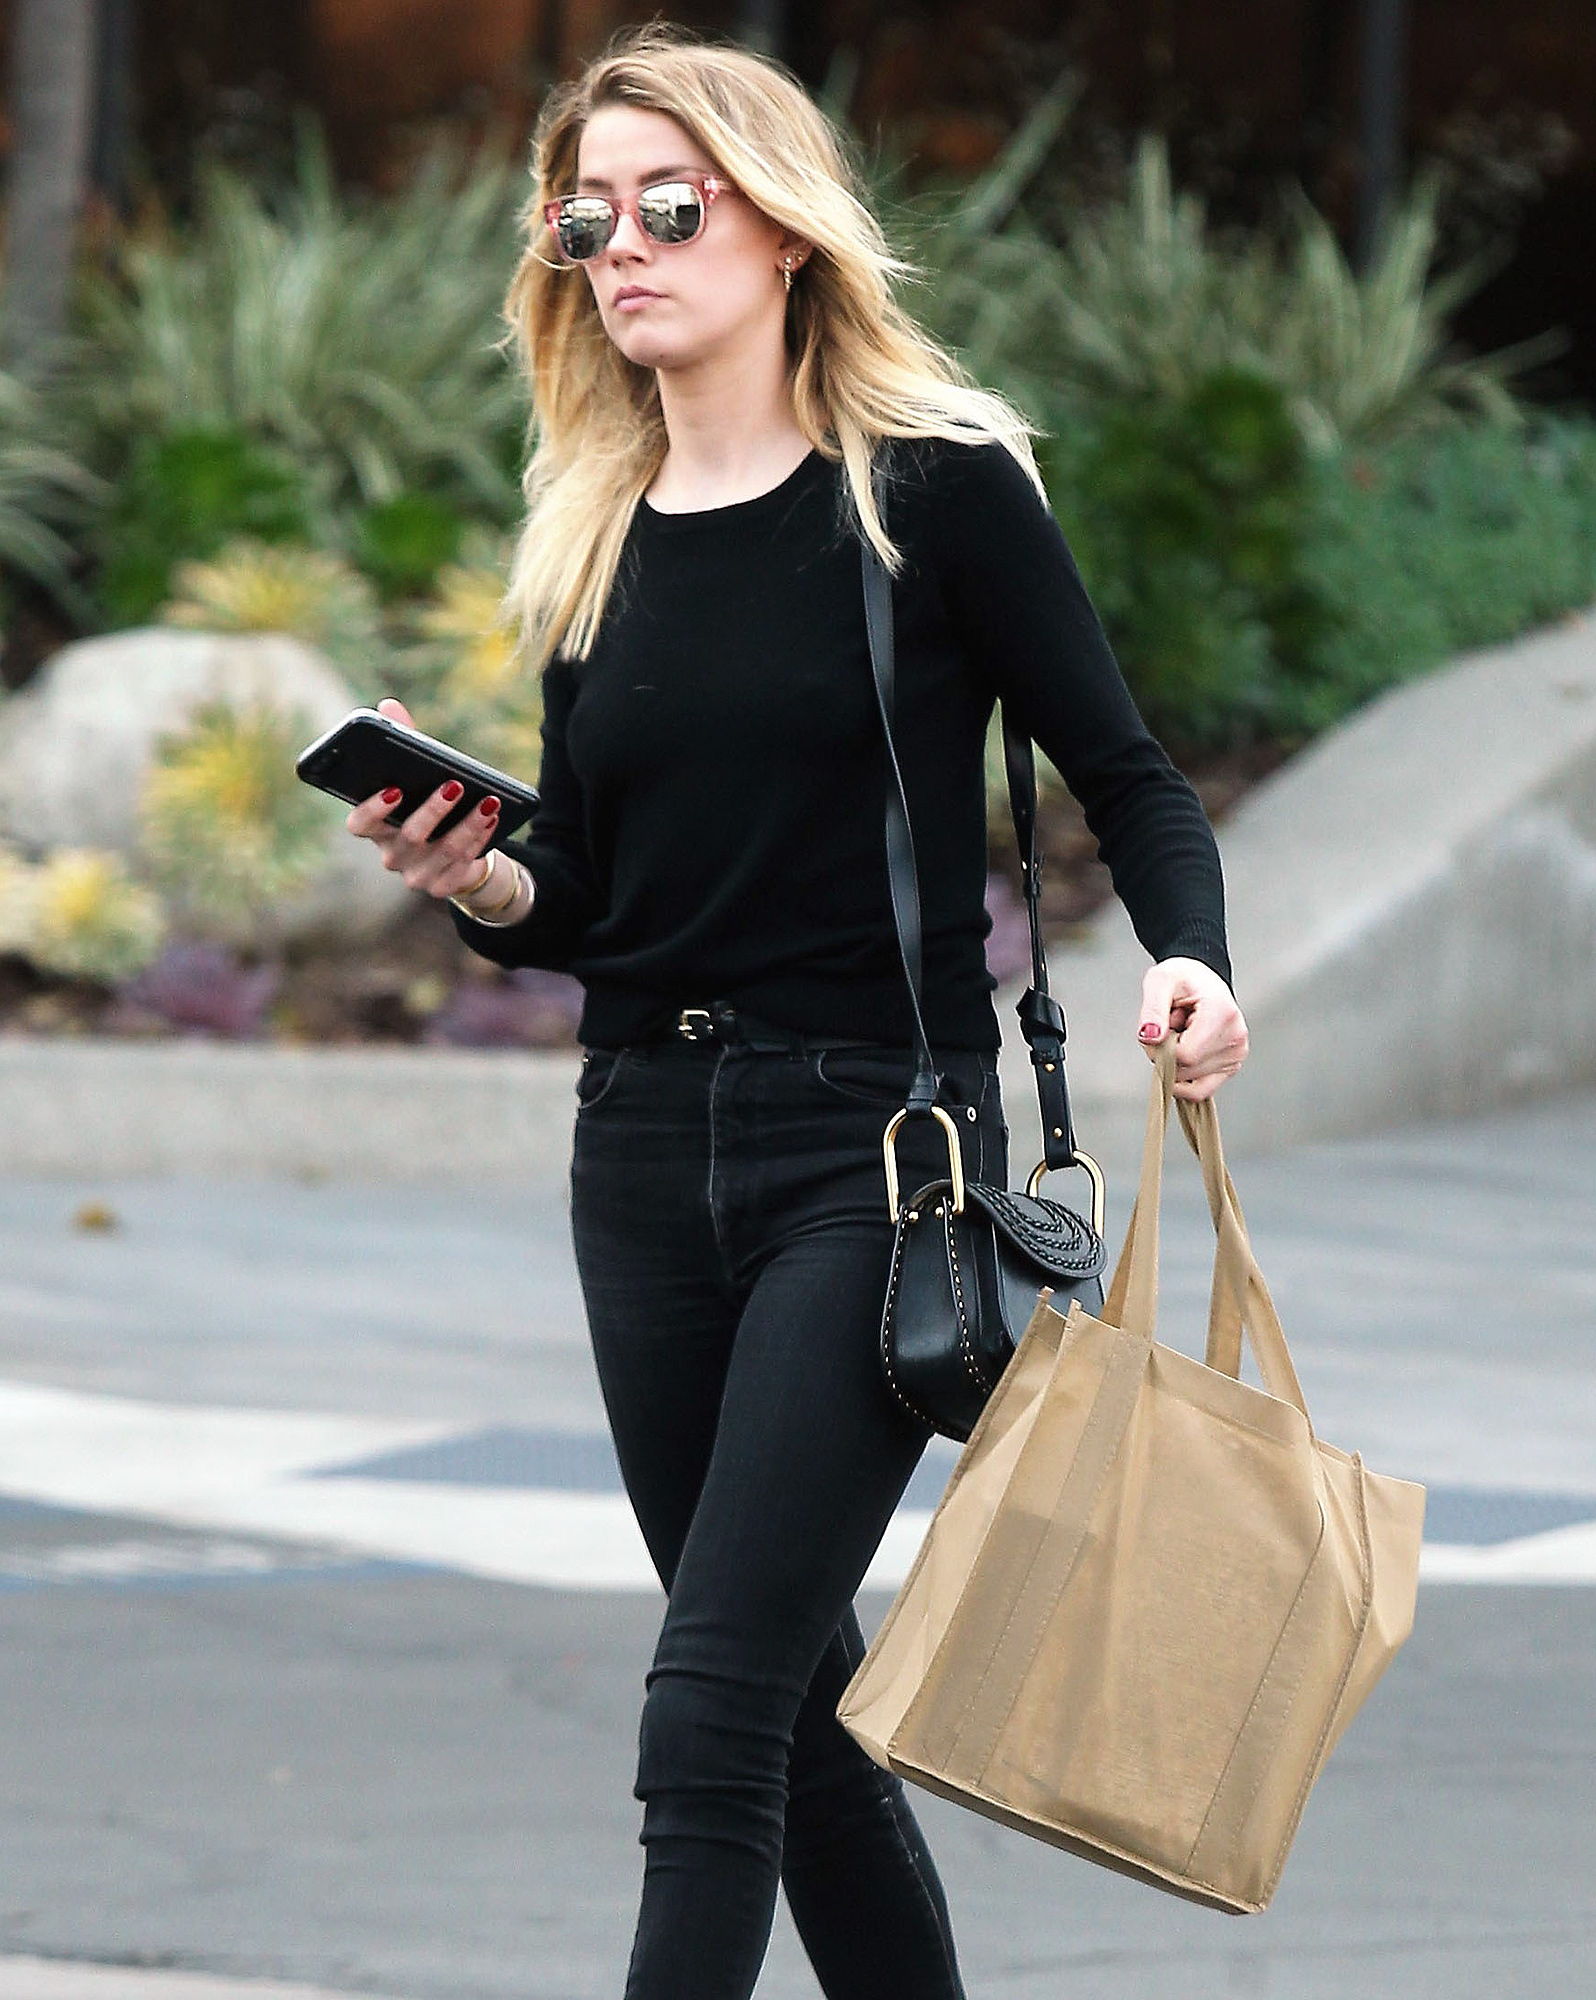 Exclusive... Amber Heard Stops By A Law Office In Santa Monica